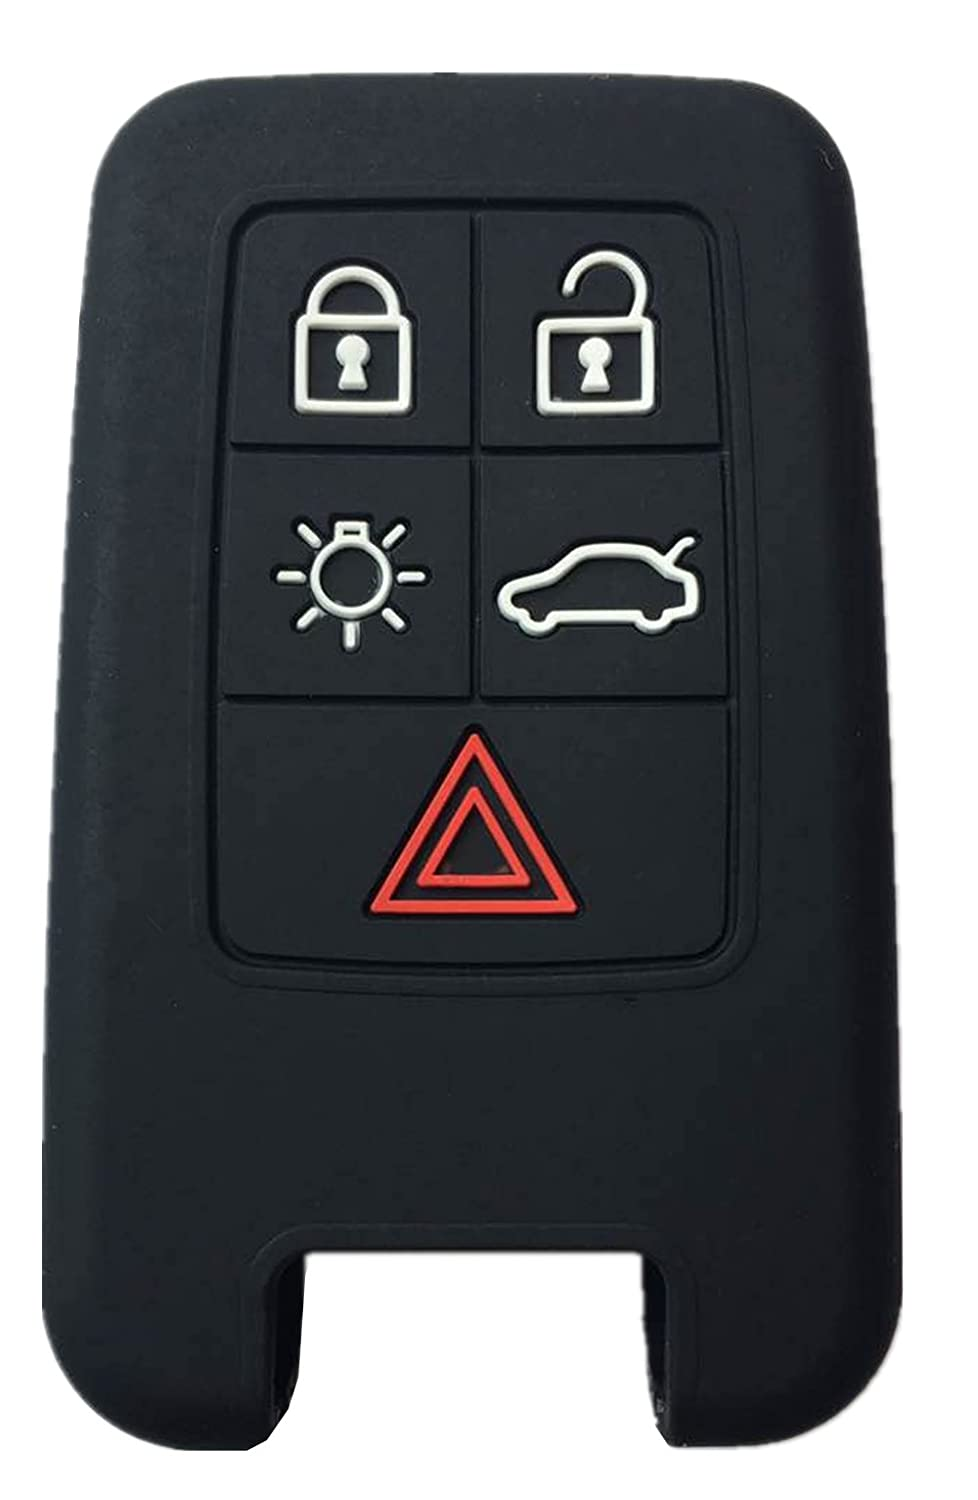 Rpkey Silicone Keyless Entry Remote Control Key Fob Cover Case protector For 5 Button Volvo S60 S80 V60 V70 XC60 XC70 KR55WK49266 KR55WK49264 ASD